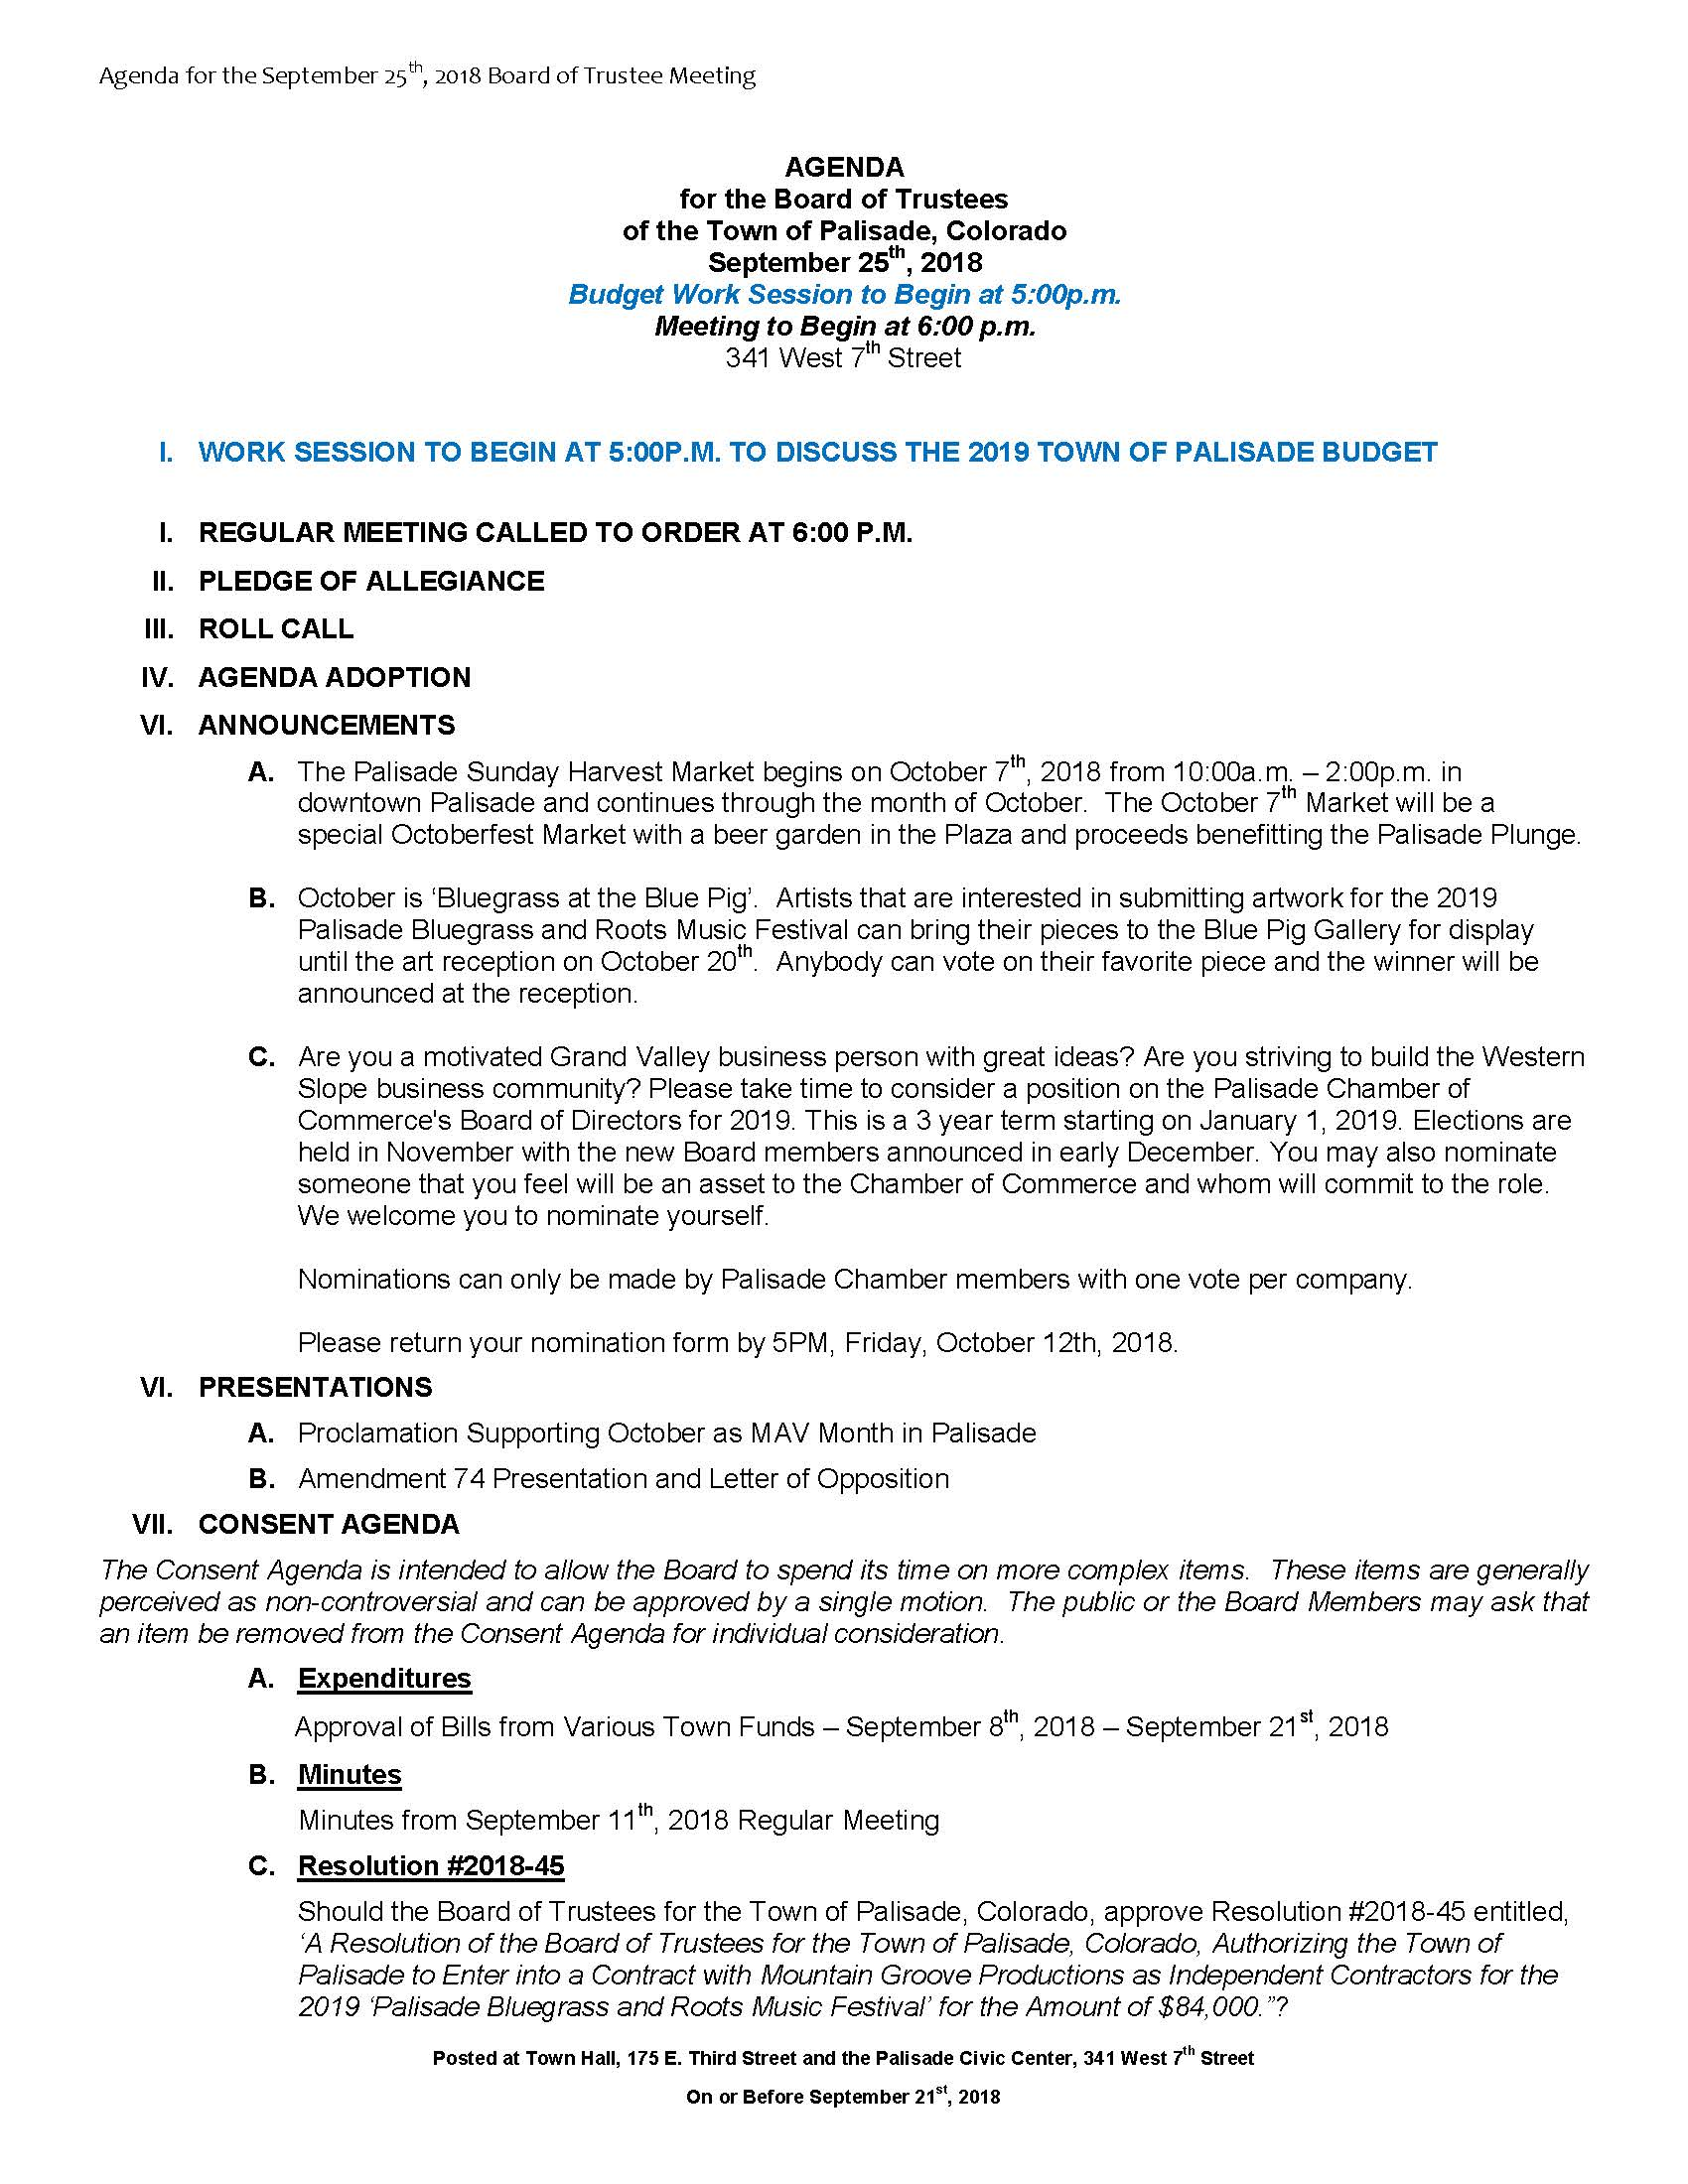 September 25th 2018 Board Meeting Agenda Page 1